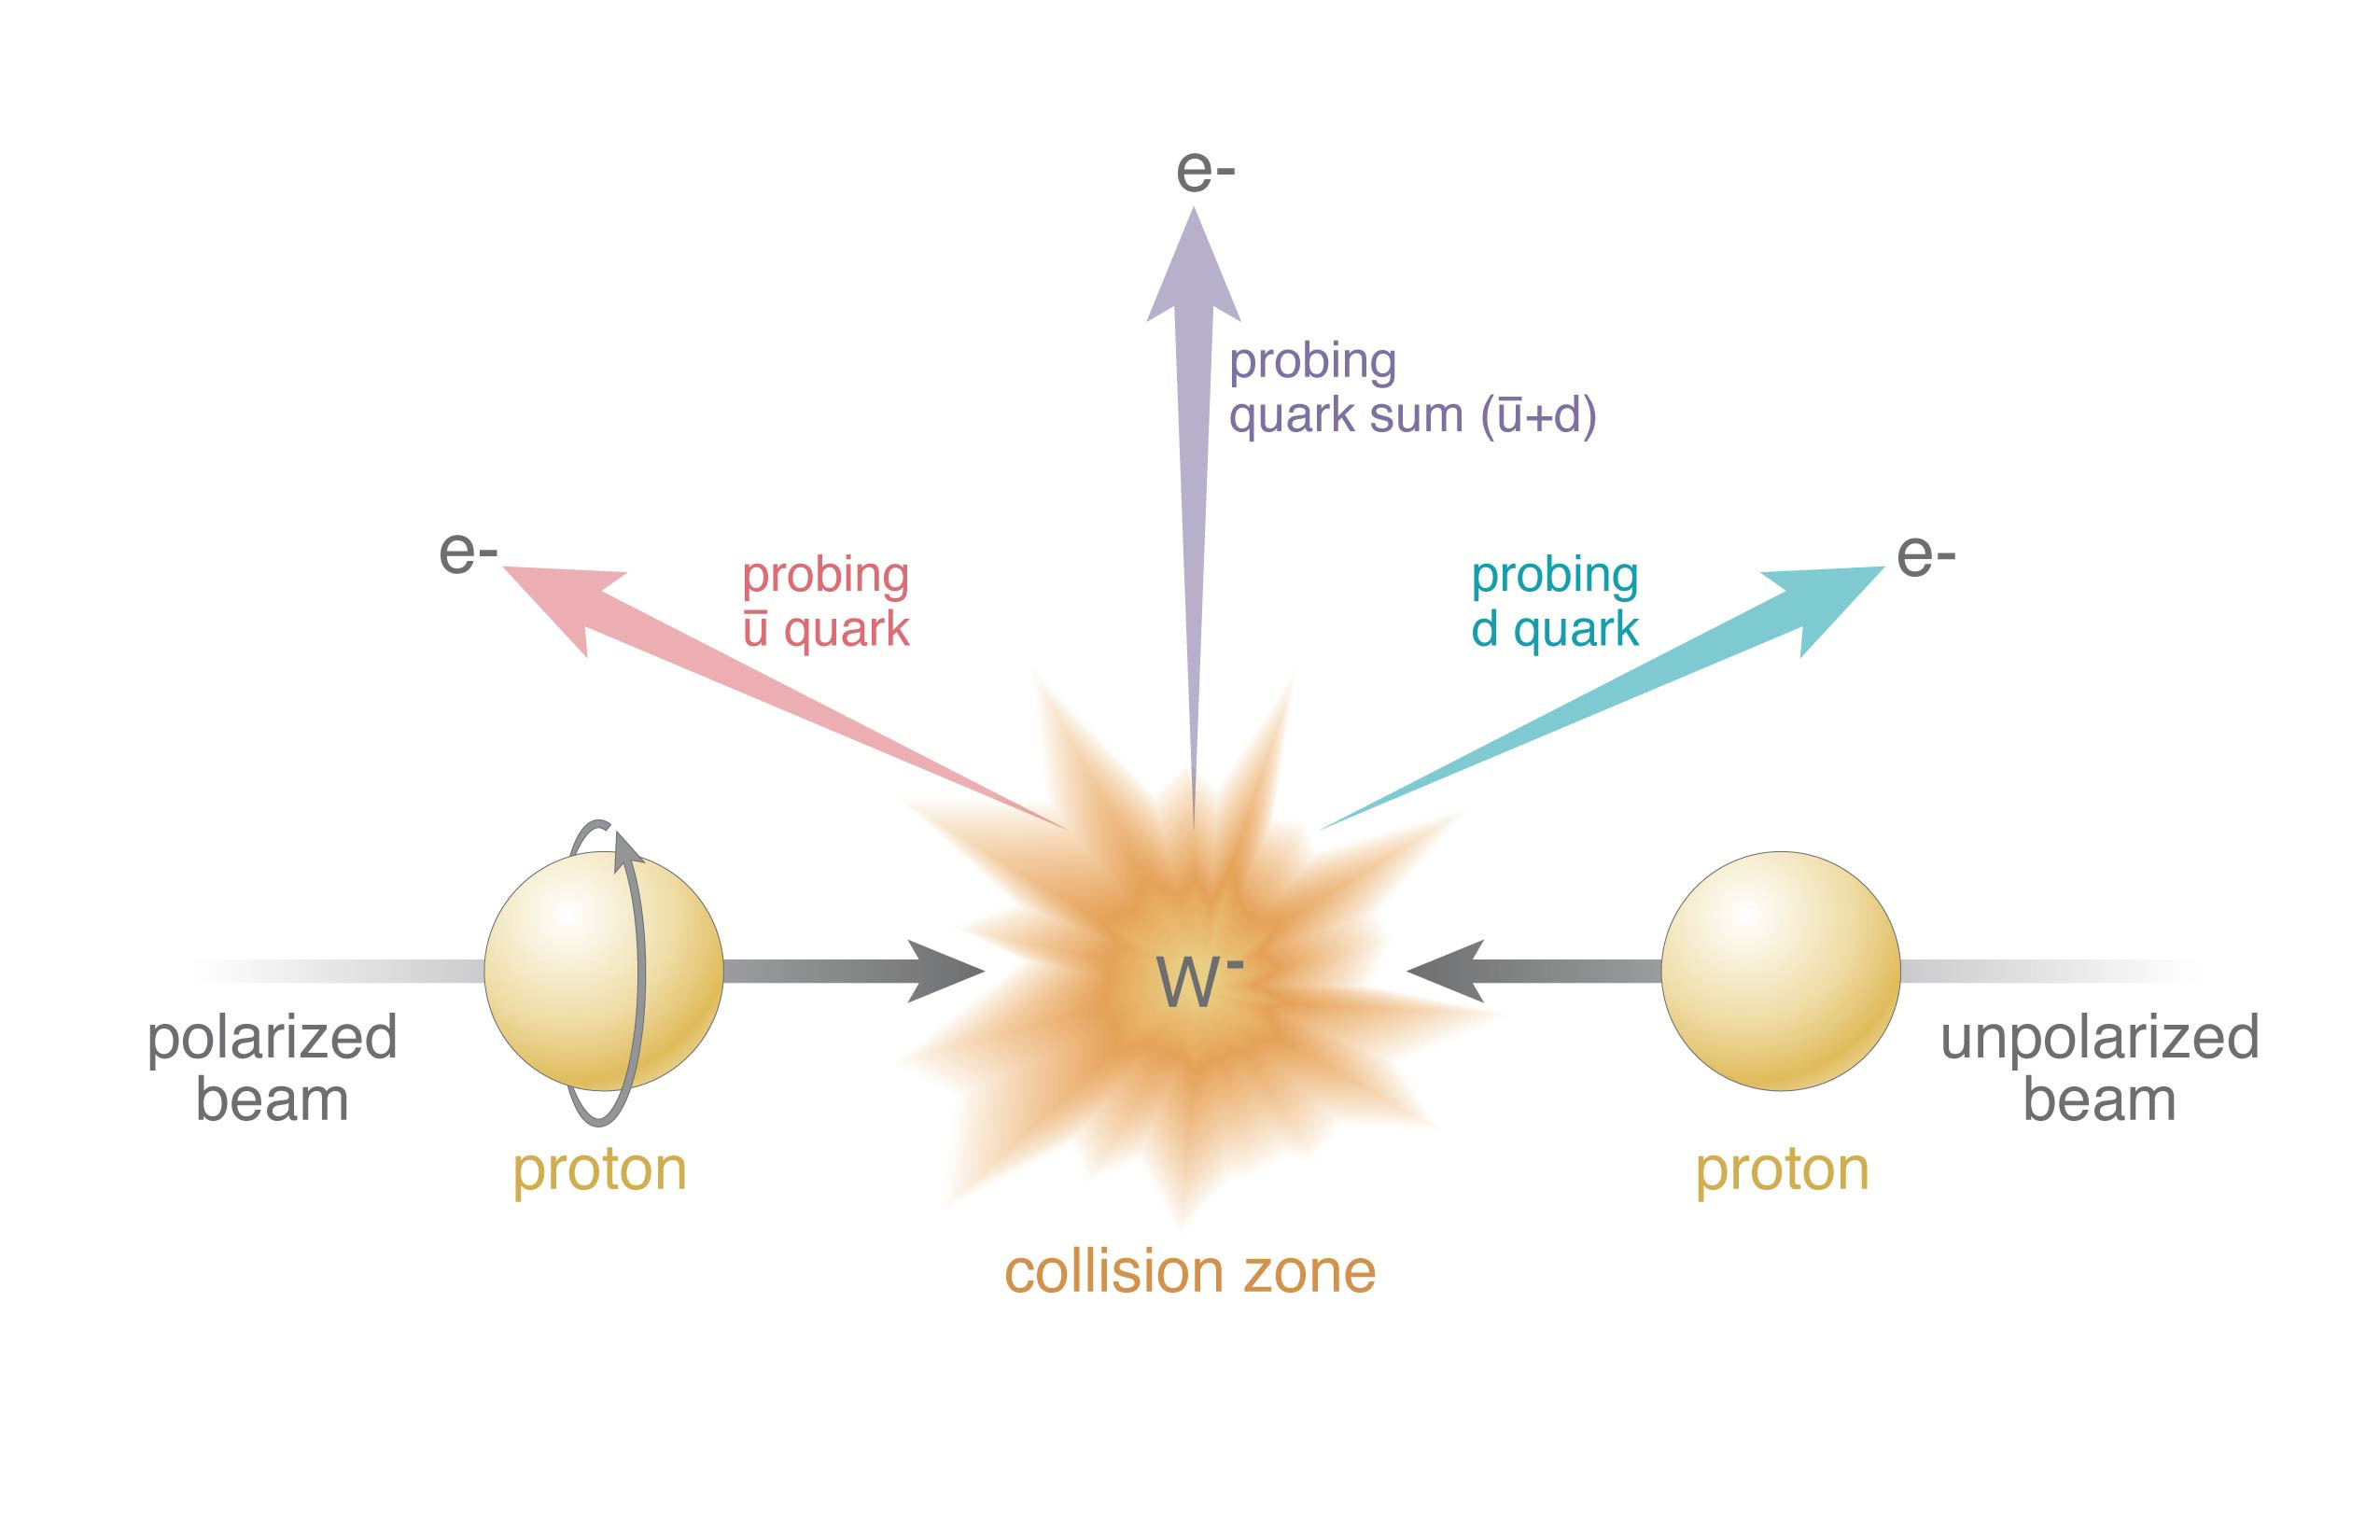 An illustration showing a proton spin puzzle